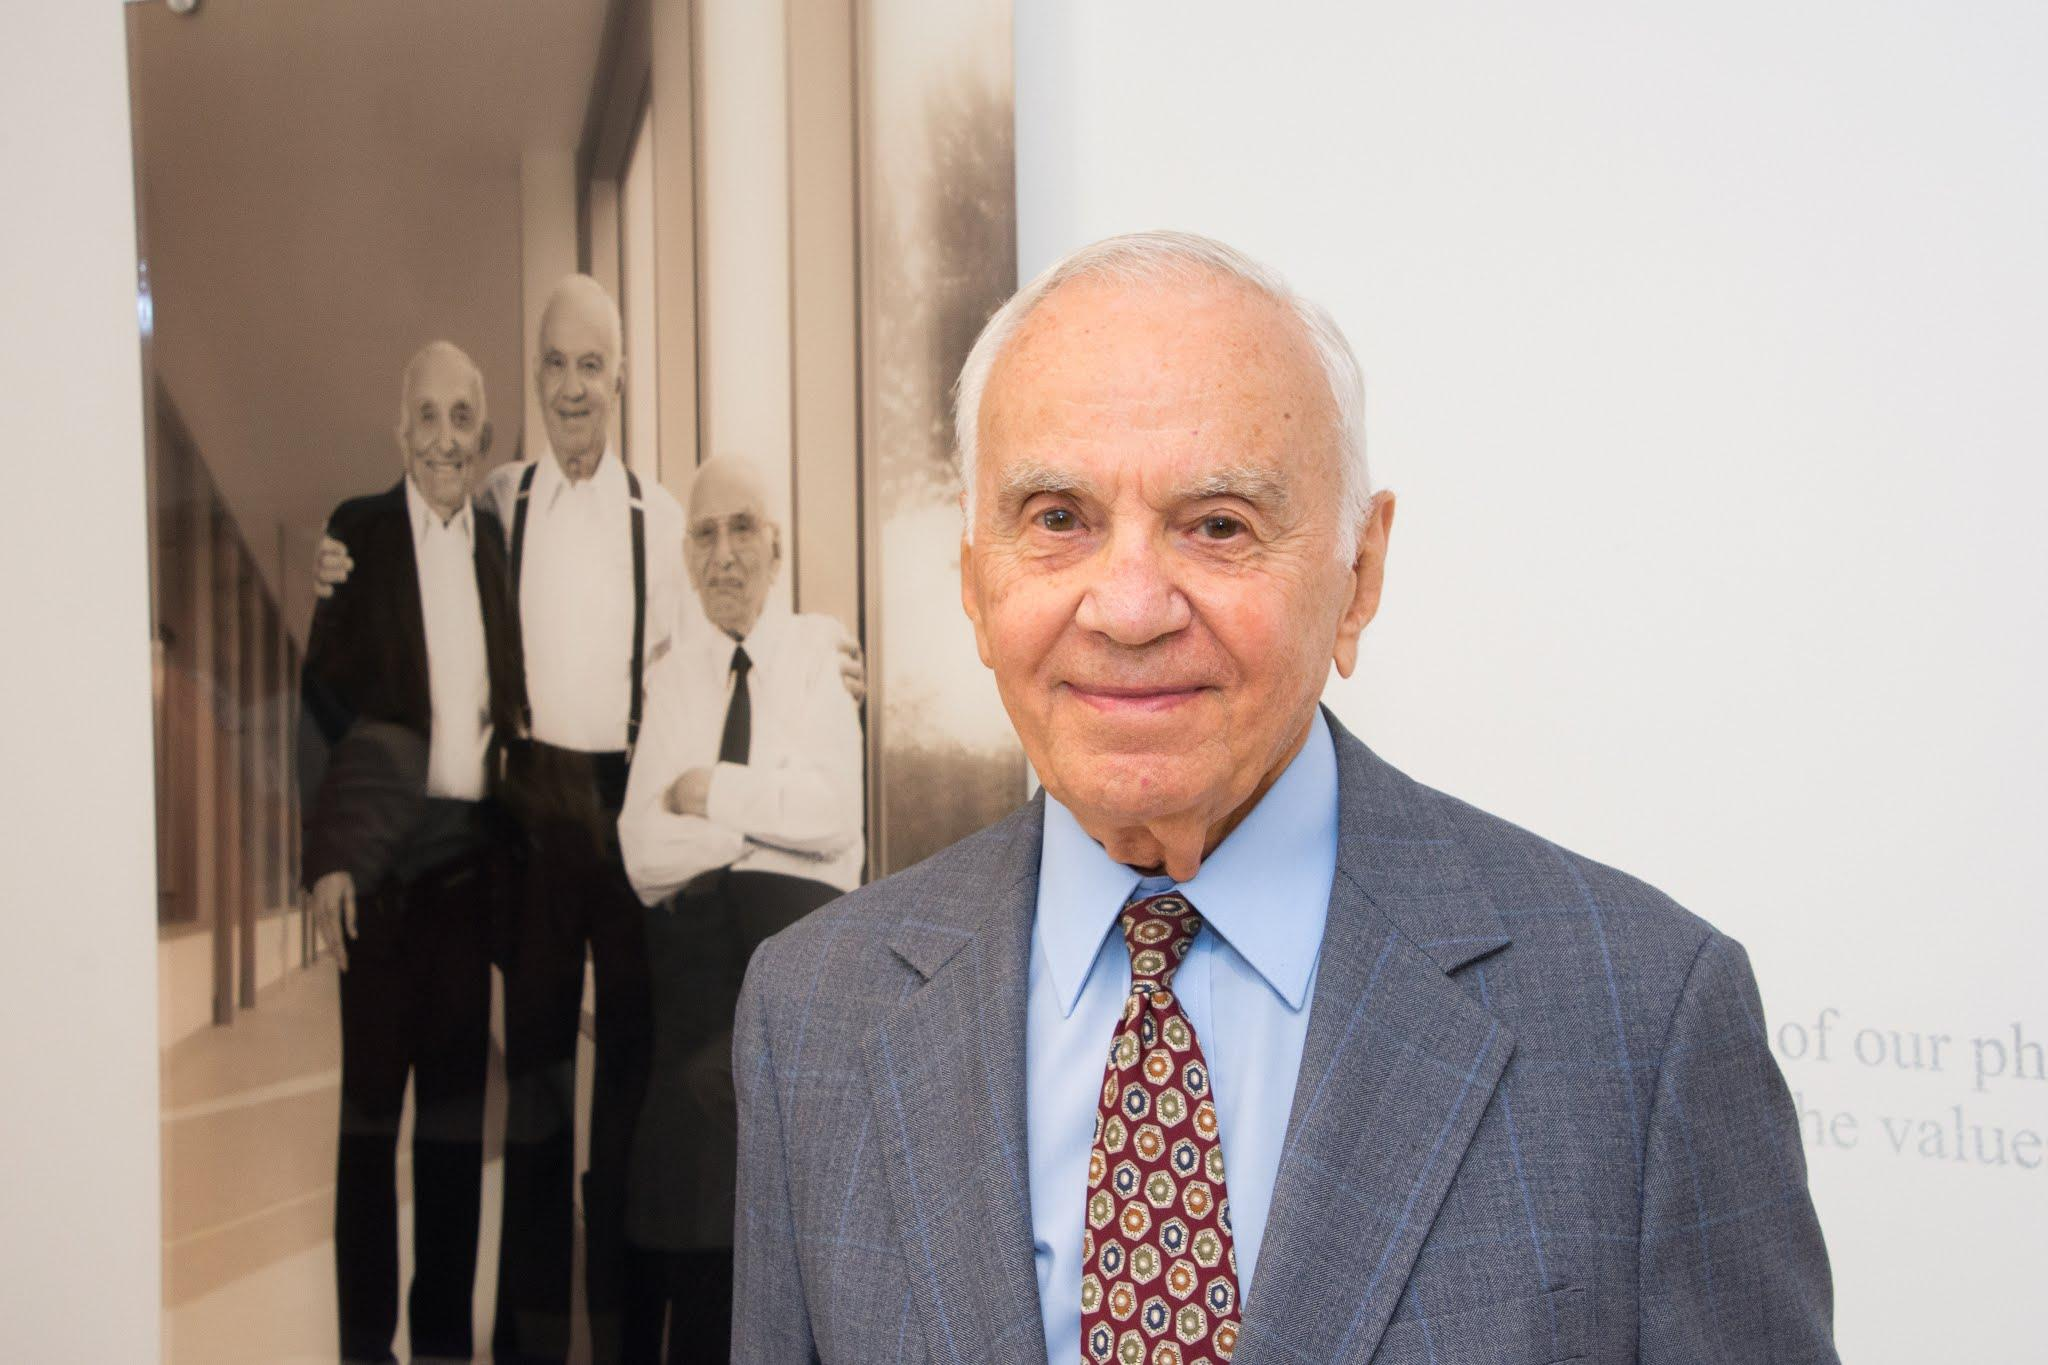 Morton Mandel standing in front of photo of him and his brothers